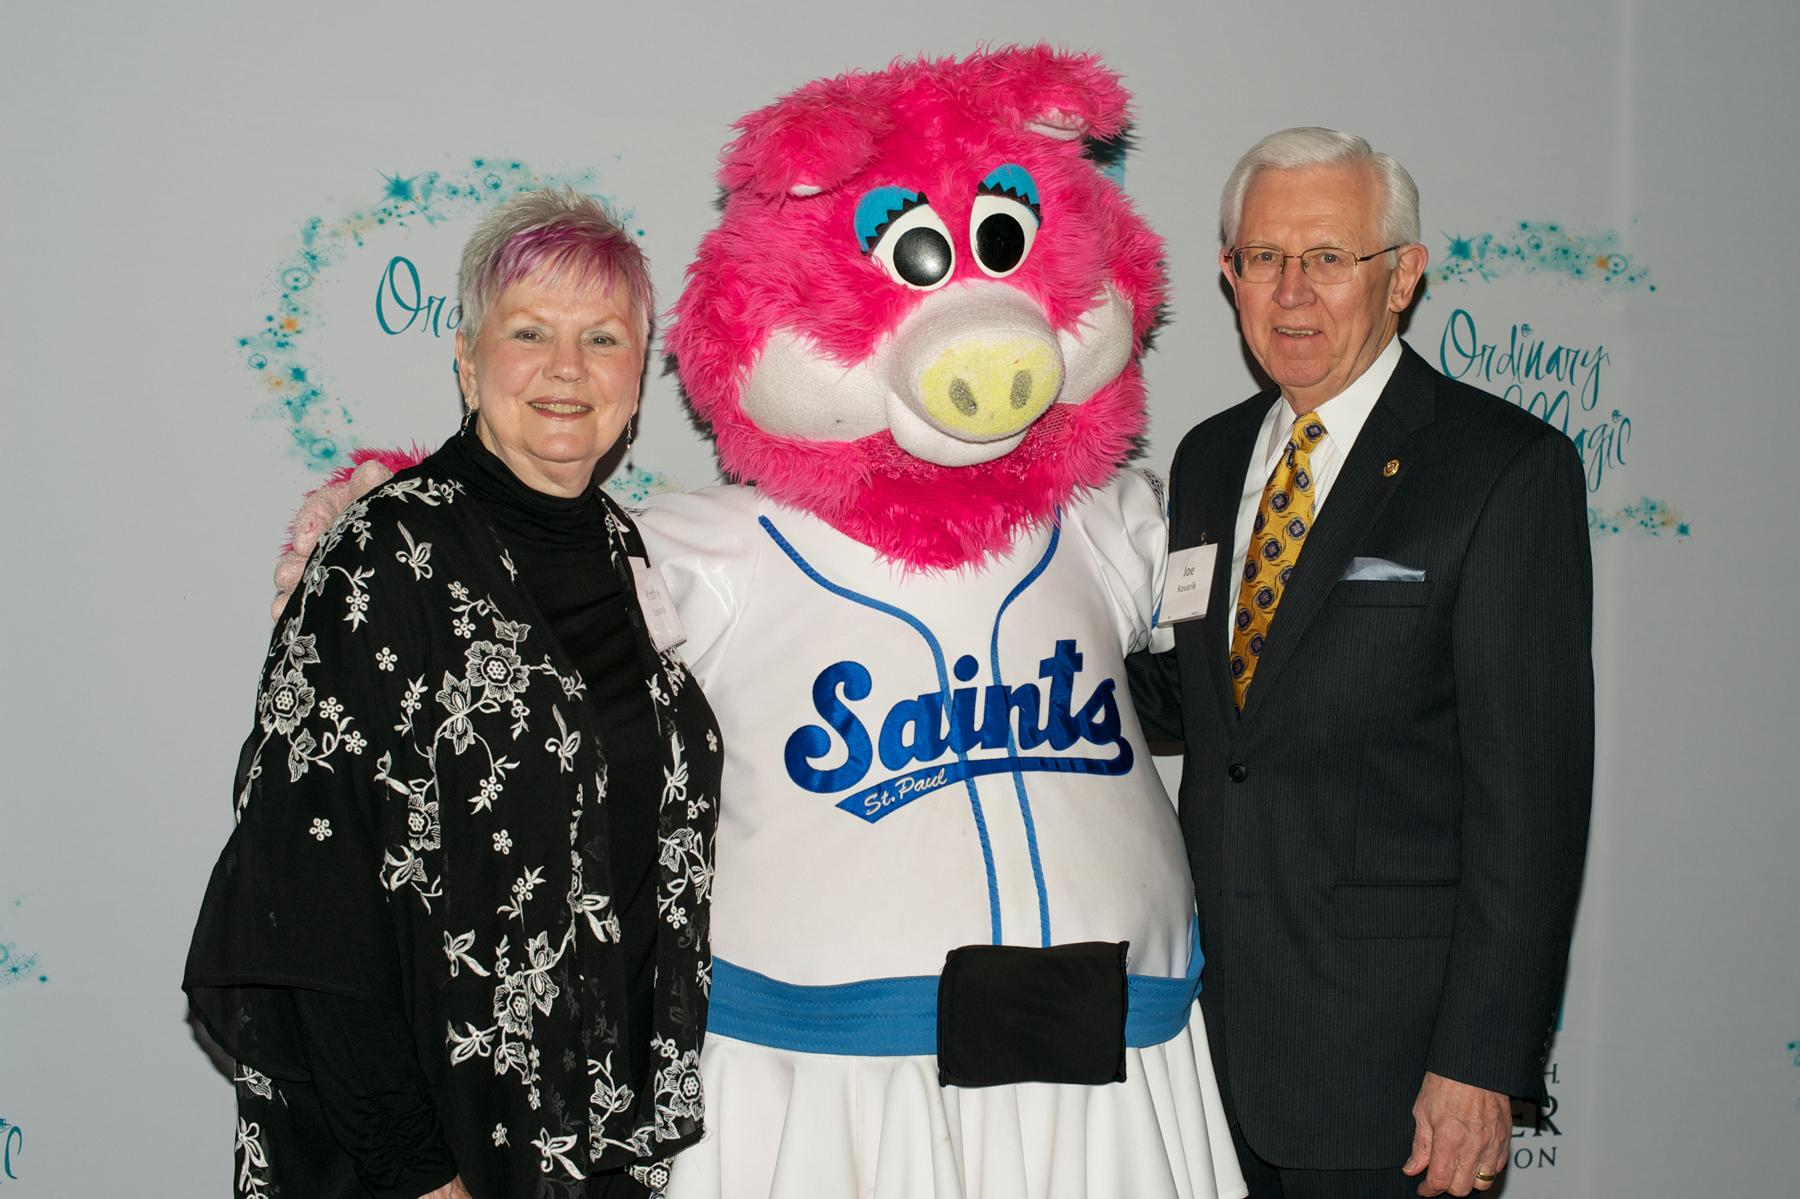 Mudonna of the Saint Paul Saints at Wilder's Ordinary Magic in Saint Paul